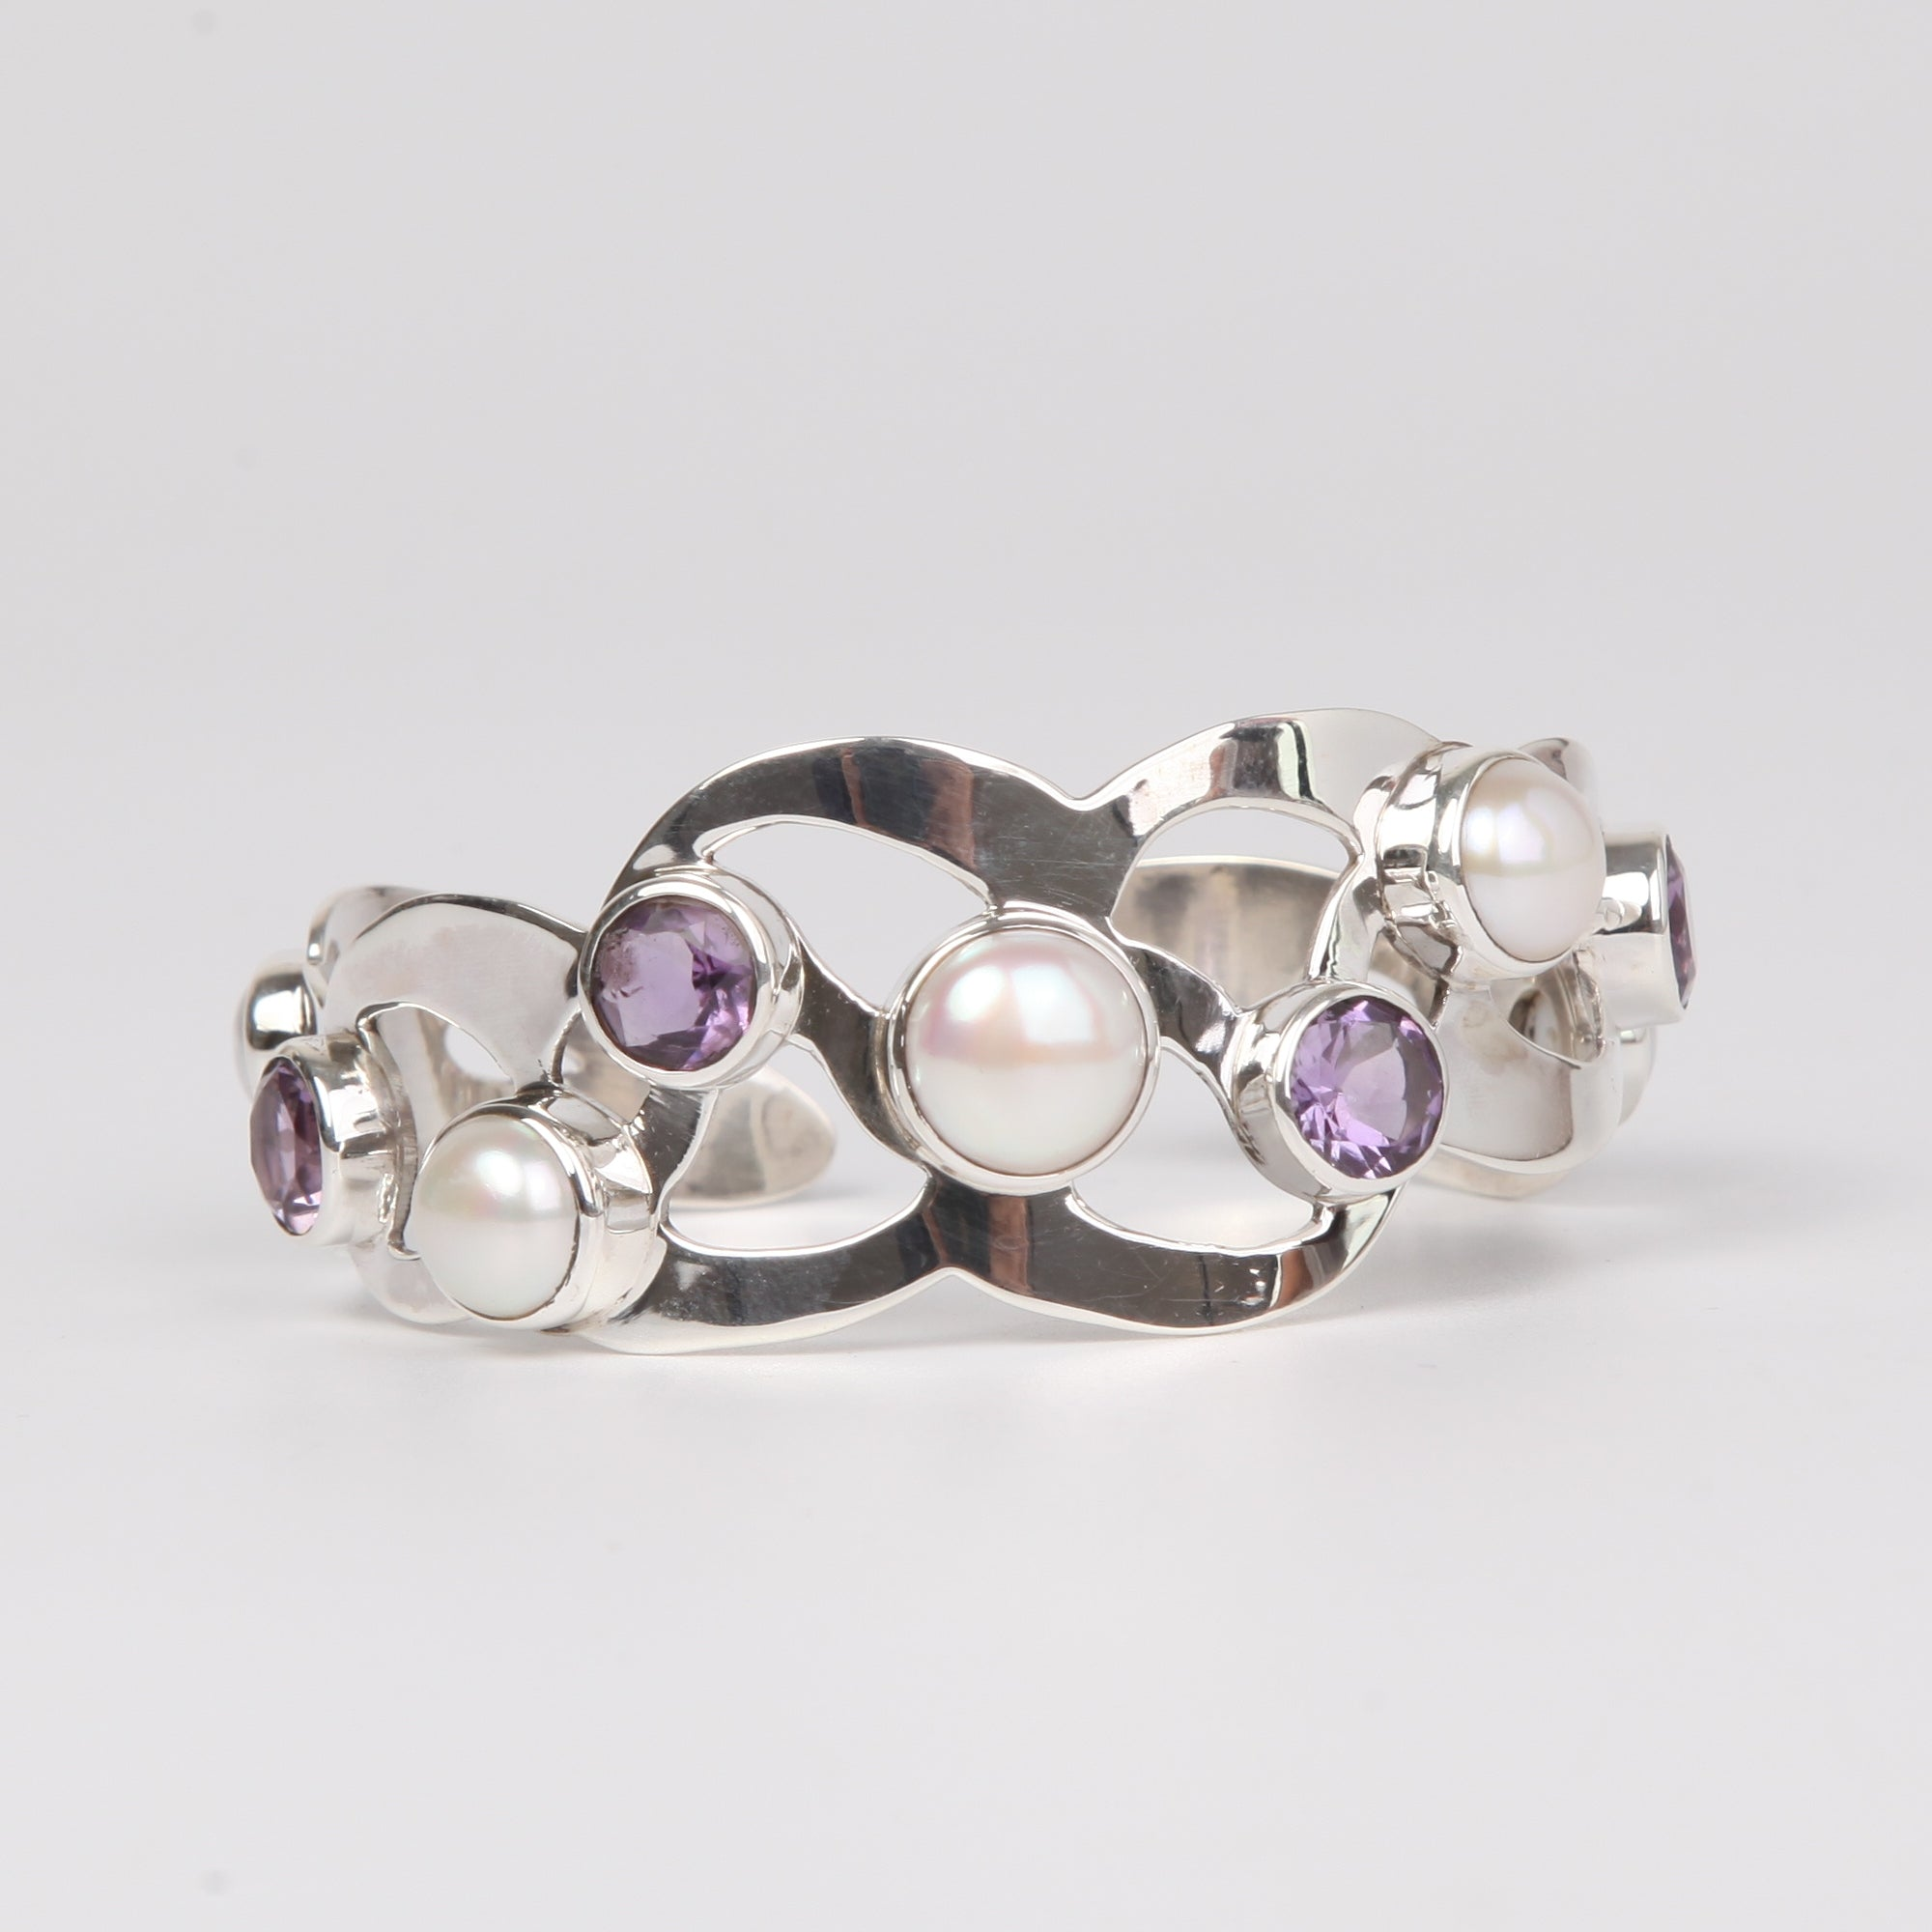 Sterling Silver Bangle with Fresh Water Pearls and Amethyst